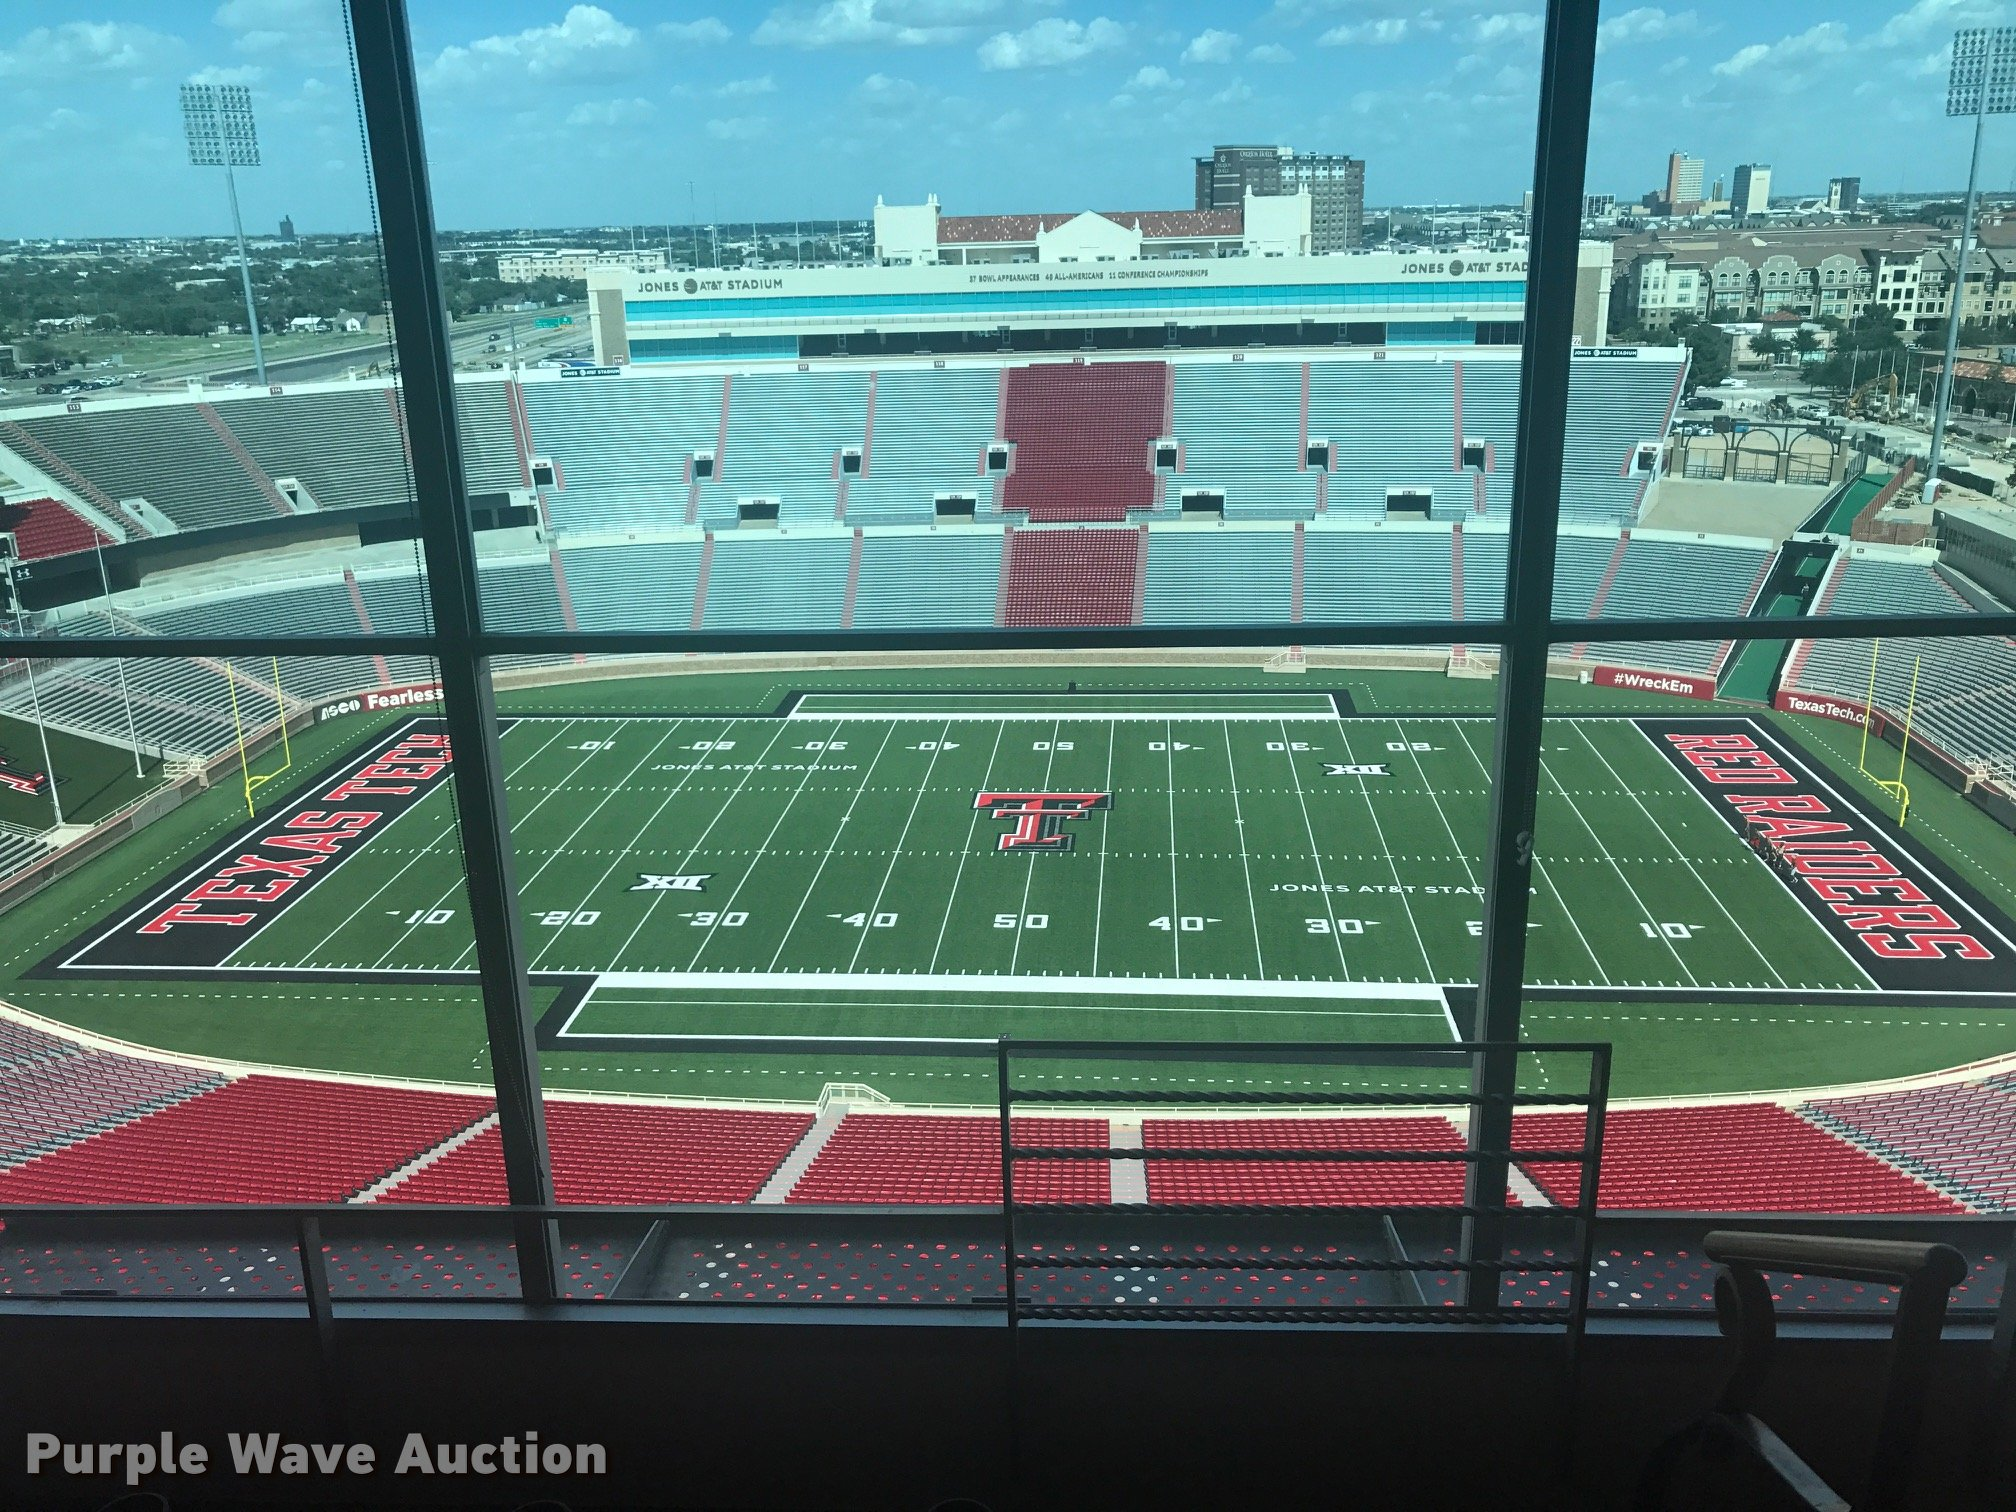 4 Box Seats Football Tickets For Texas Tech Vs Arizona State In Lubbock Tx Item G1284 Sold Purple Wave